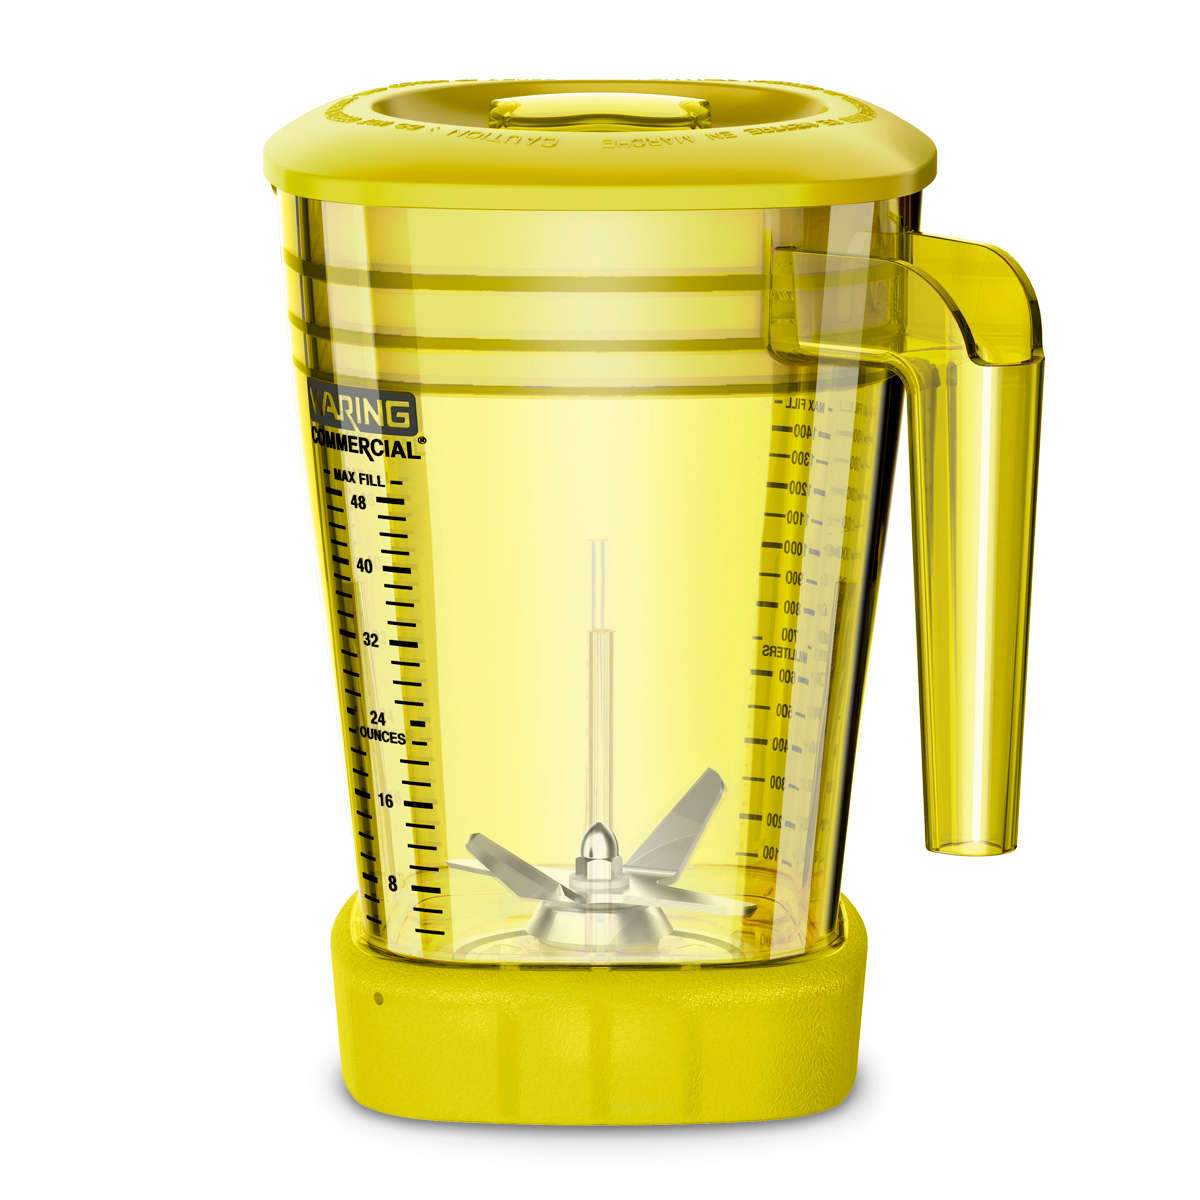 Waring CAC93X-03 blender container